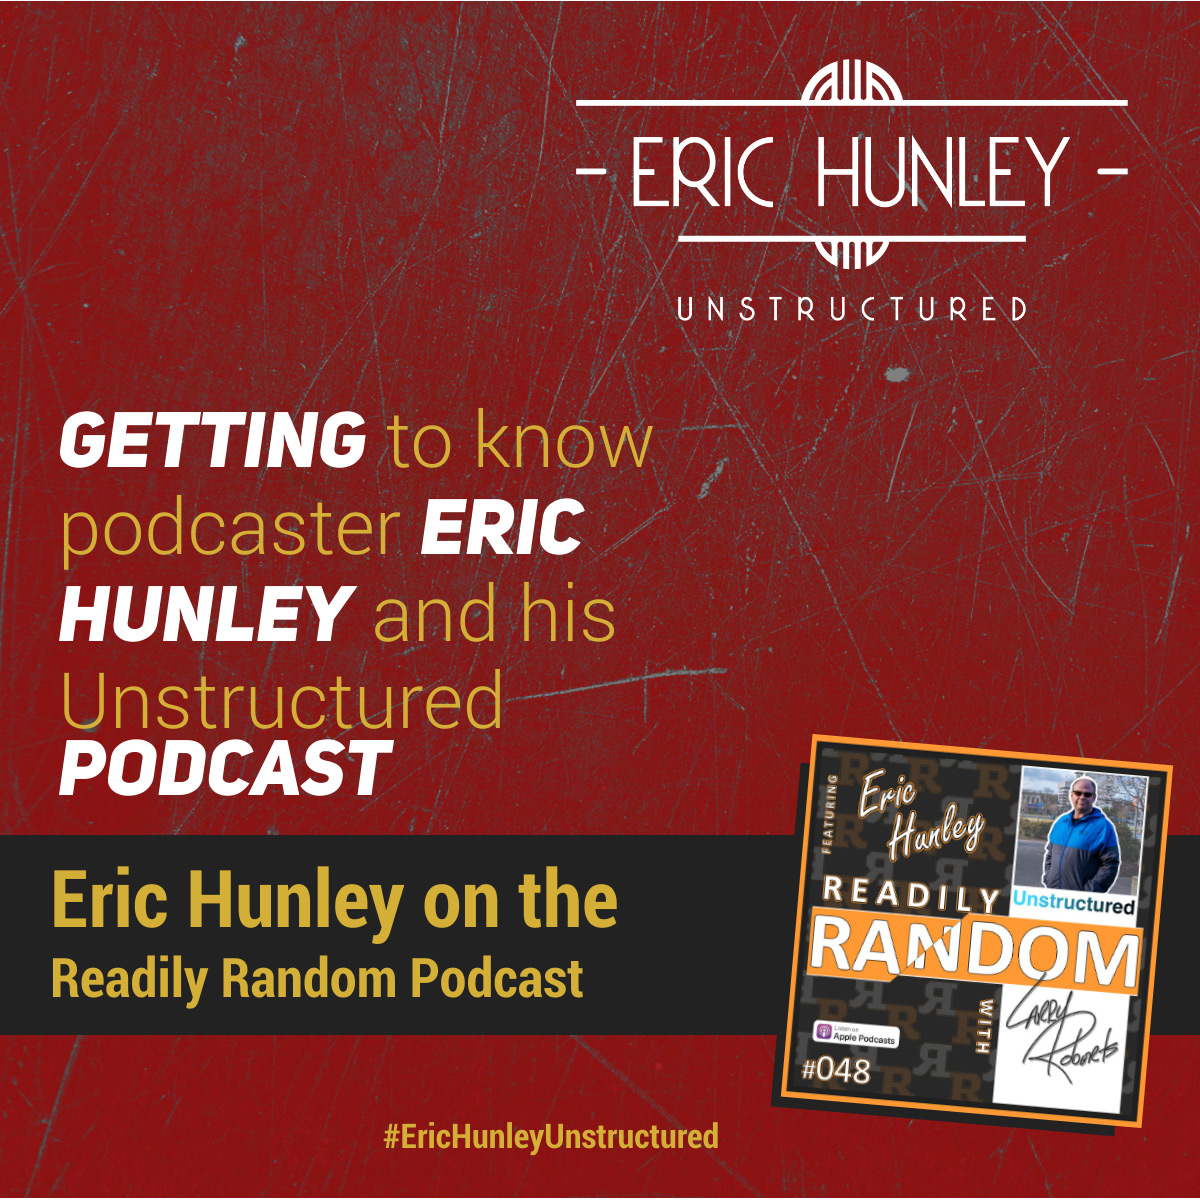 Eric Hunley Podcast Appearance Interviews - Readily Random Podcast Square Post